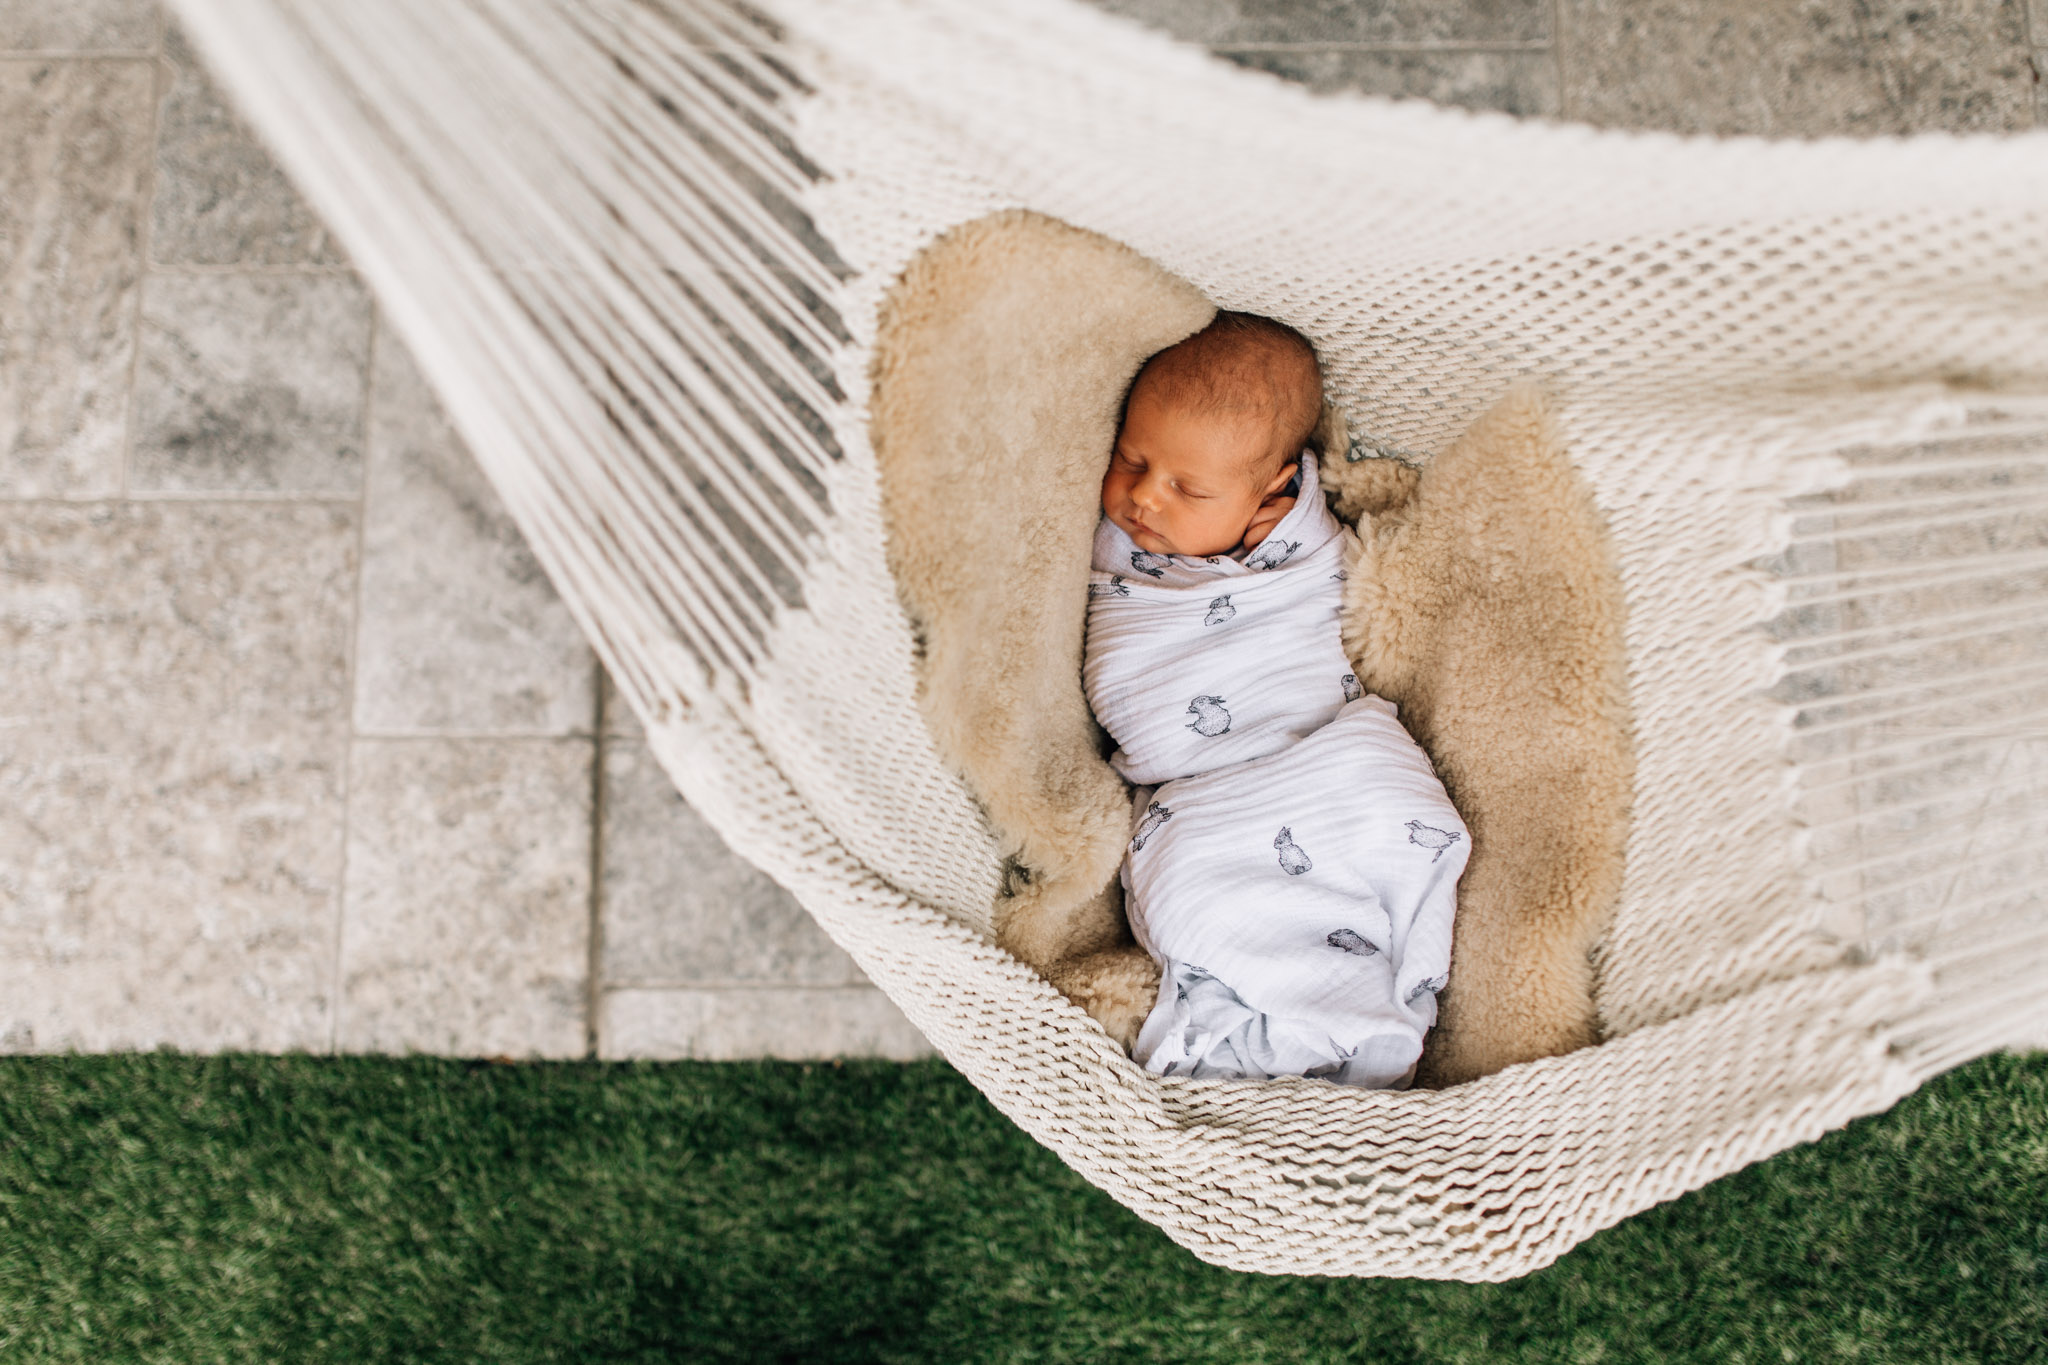 baby-sleeping-in-hammock-IV (1 of 1).jpg